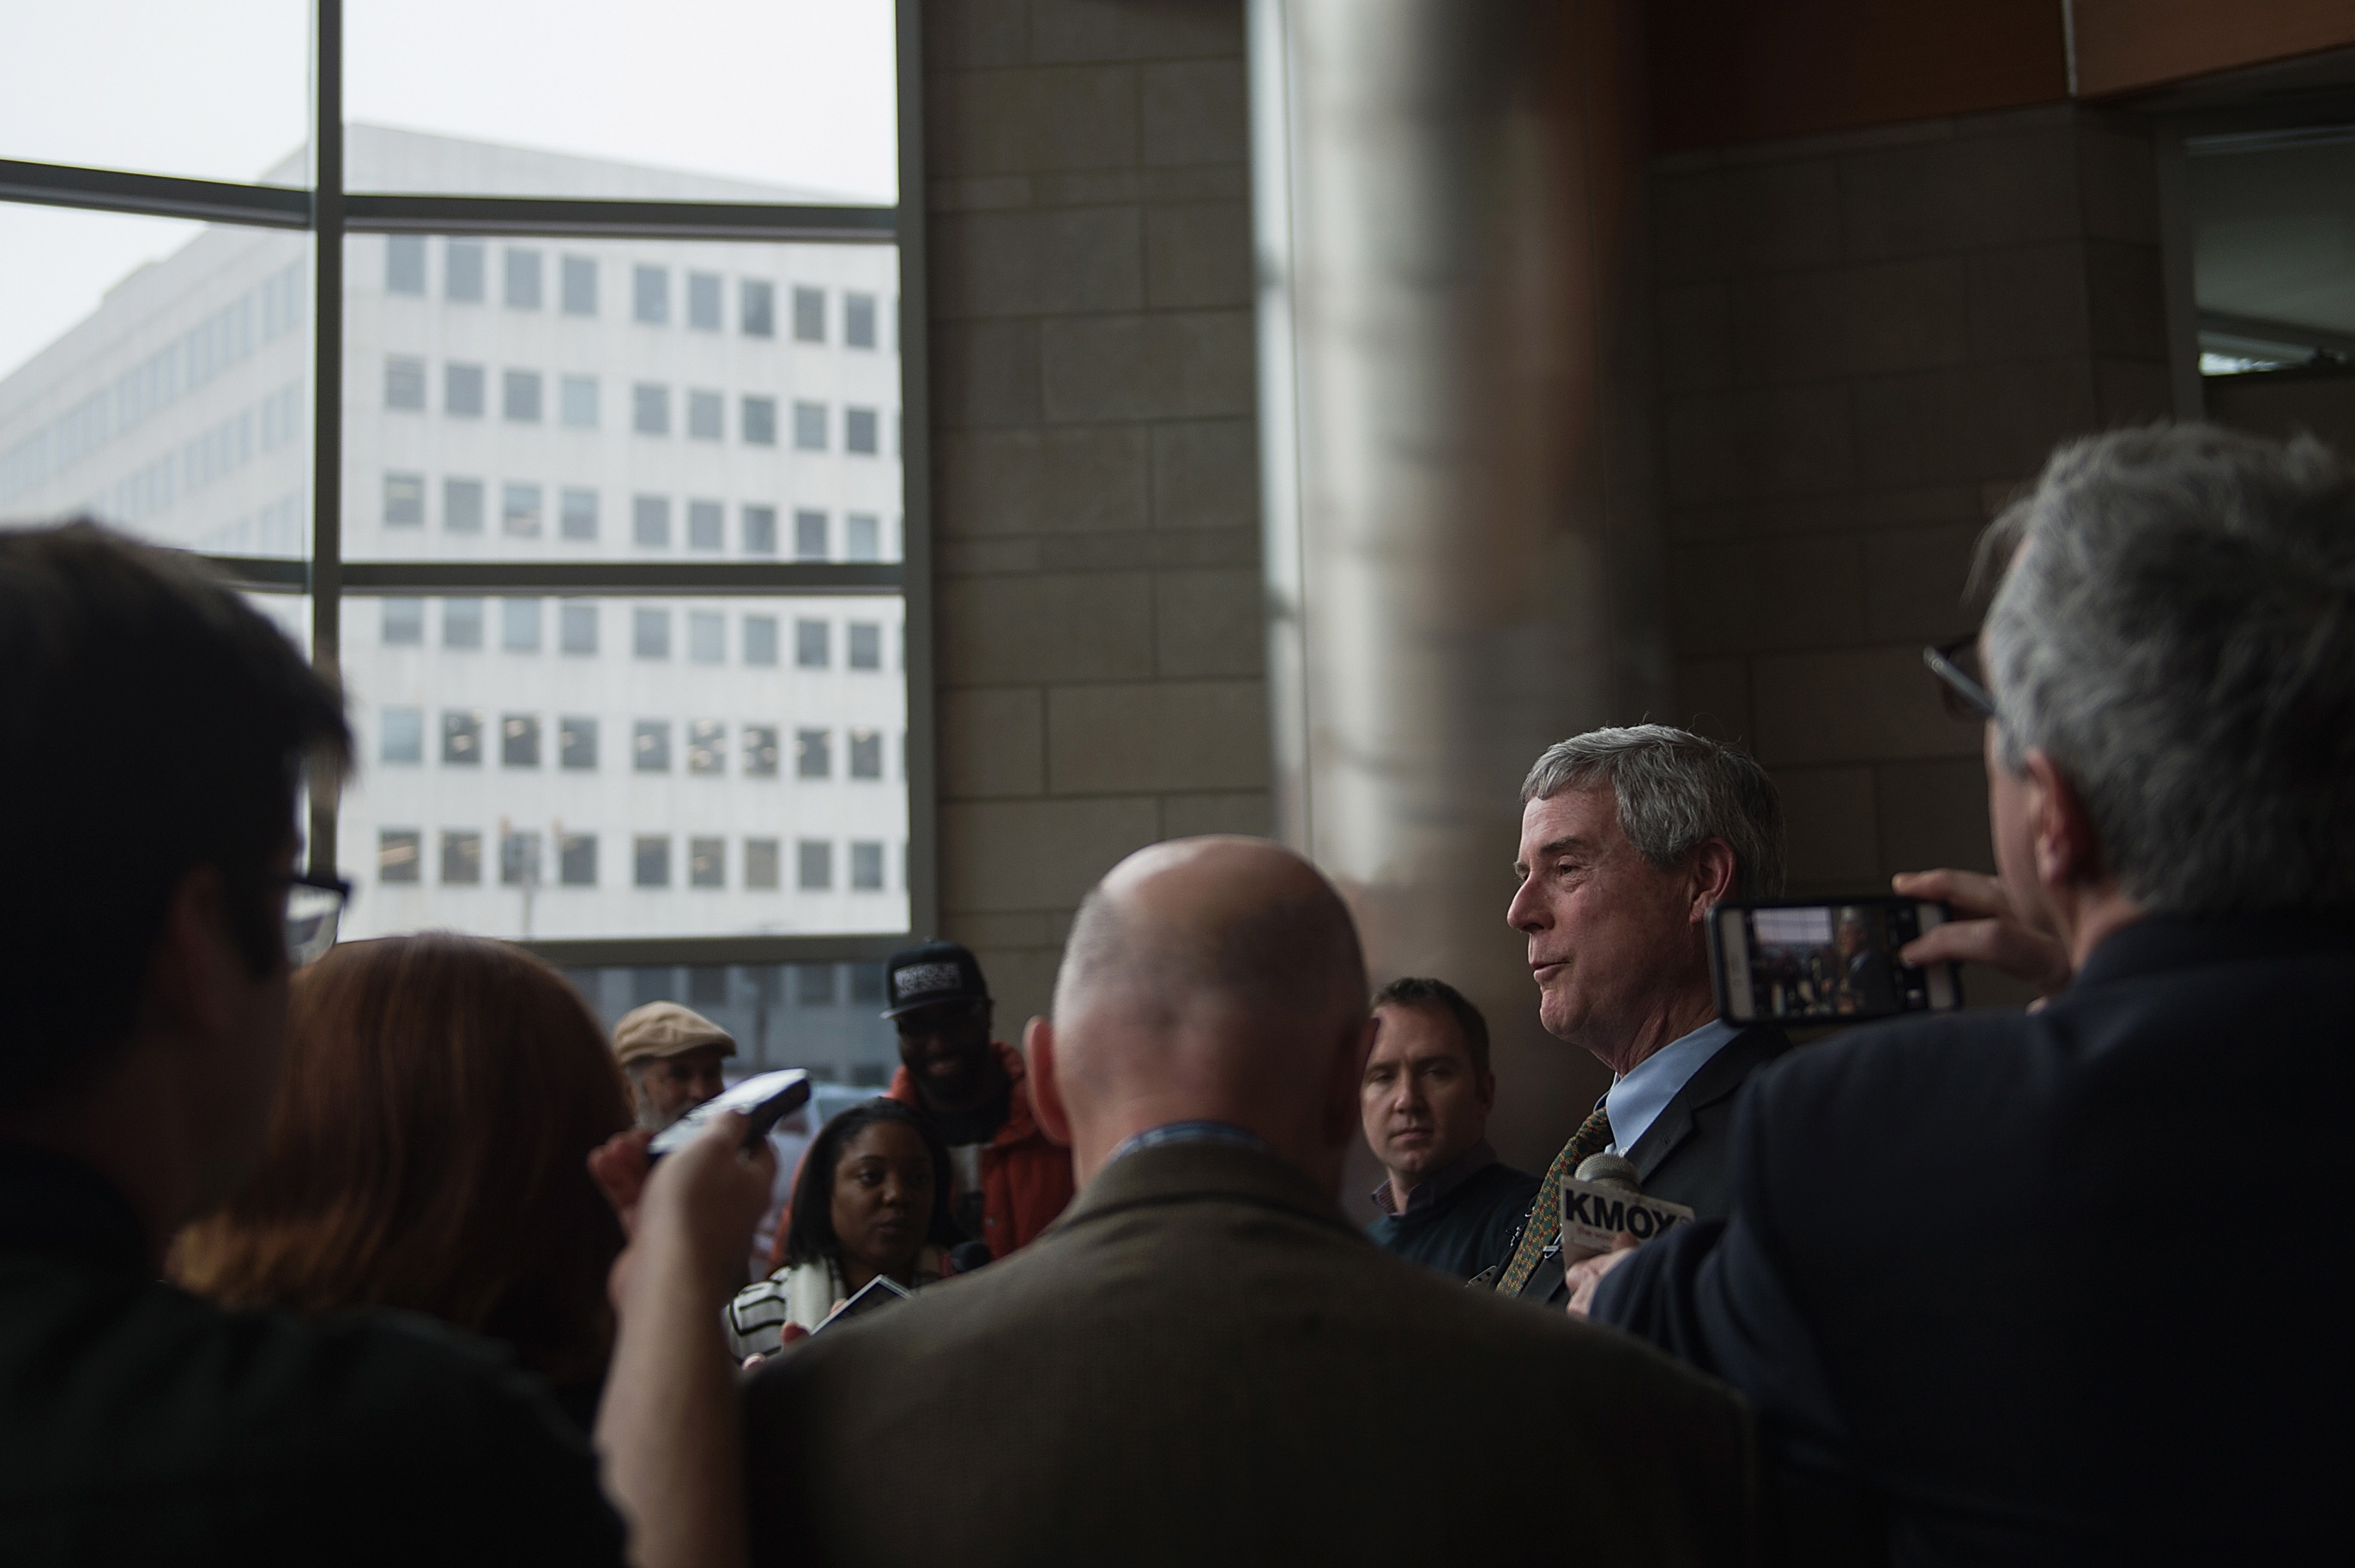 """CLAYTON, MO - MARCH 13:  Robert P. """"Bob"""" McCulloch, Prosecuting Attorney for St. Louis County speaks to the media during a news conference on March 13, 2017 in Clayton, Missouri. Tension and protest in Ferguson has arisen in response to video footage of slain 18 year-old Michael Brown in a recent documentary. (Photo by Michael B. Thomas/Getty Images)"""